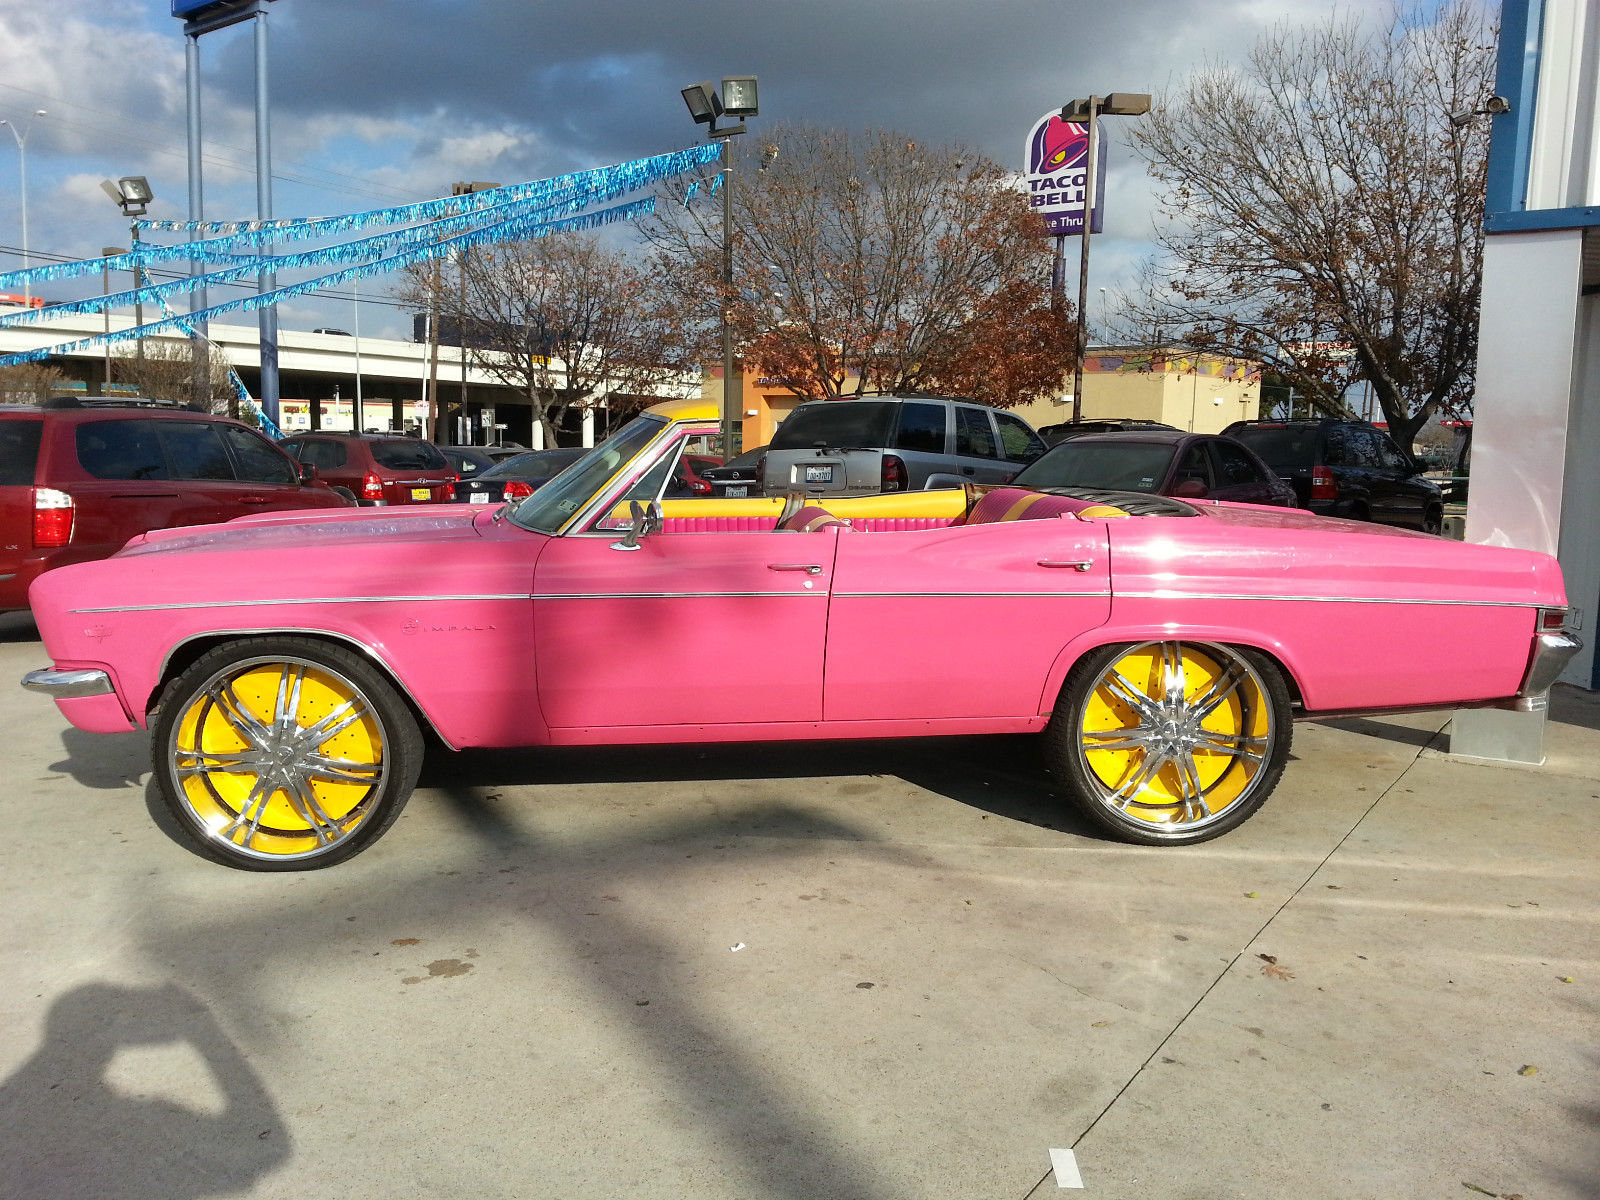 1966 Chevrolet Impala Complete Custom Car One Of A Kind